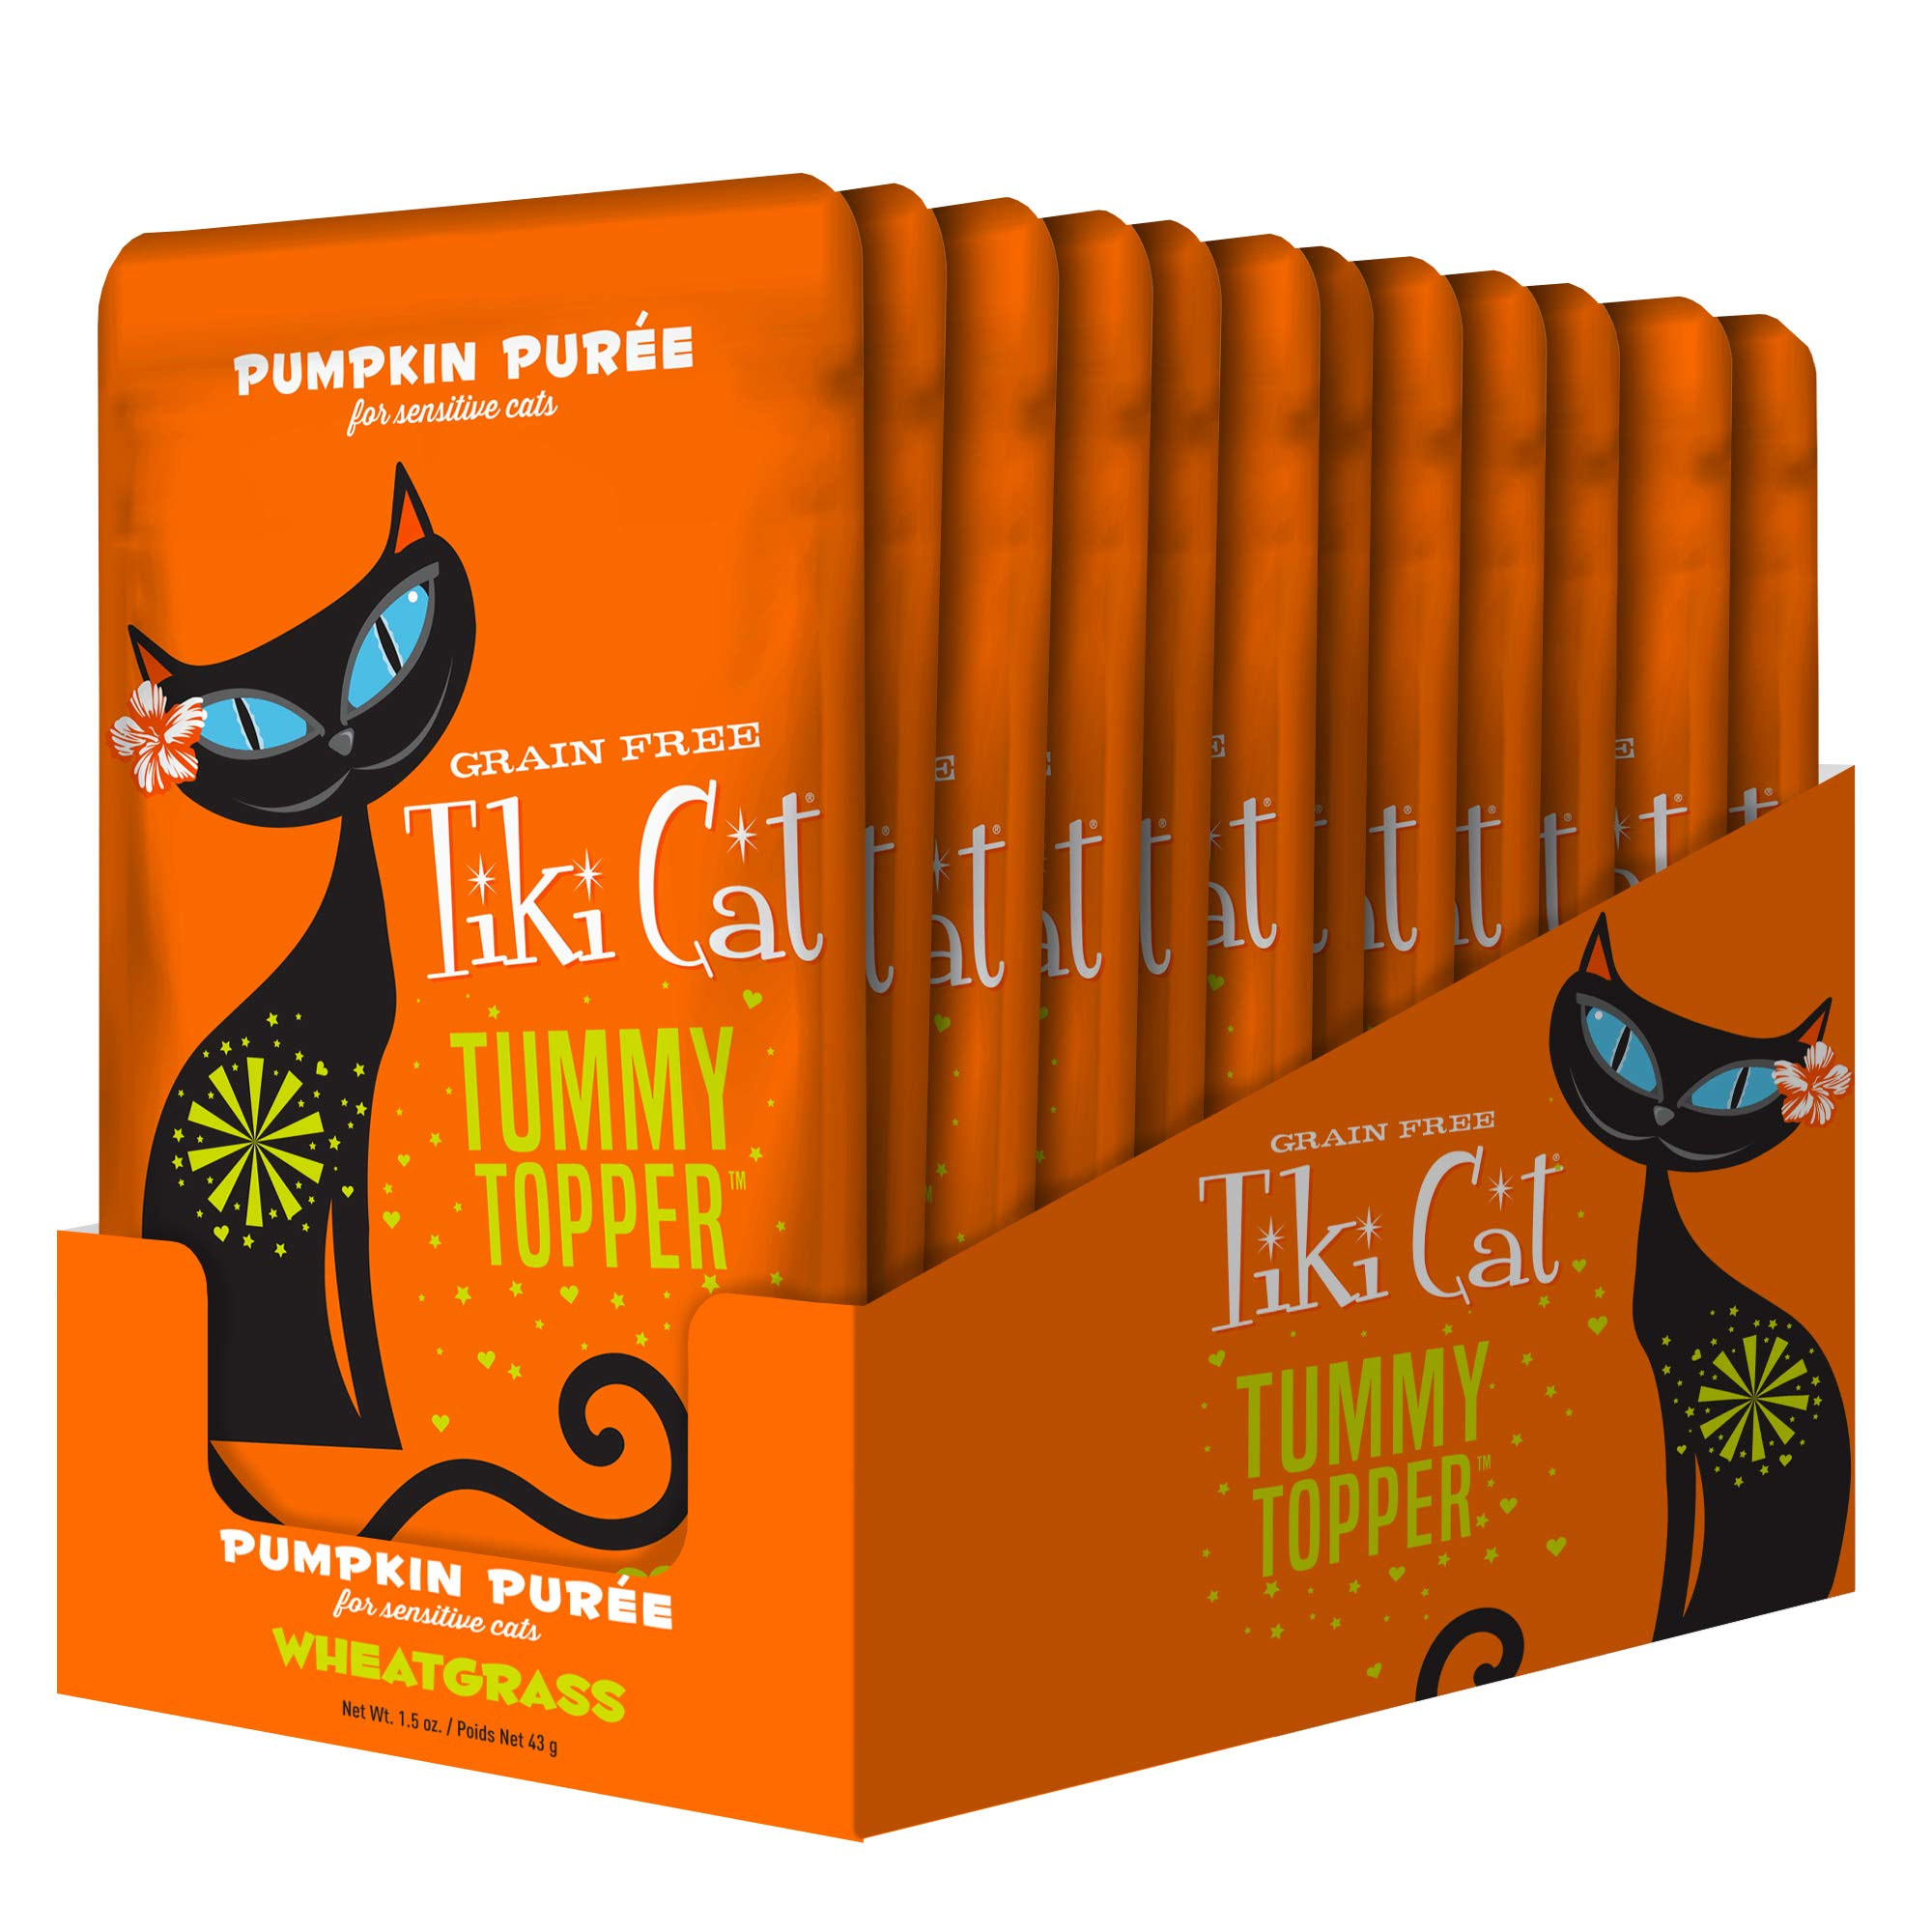 Tiki Cat Healthy Tummy Topper with Non-GMO Pureed Pumpkin for Cats, 12 Pouches by Tiki Pets